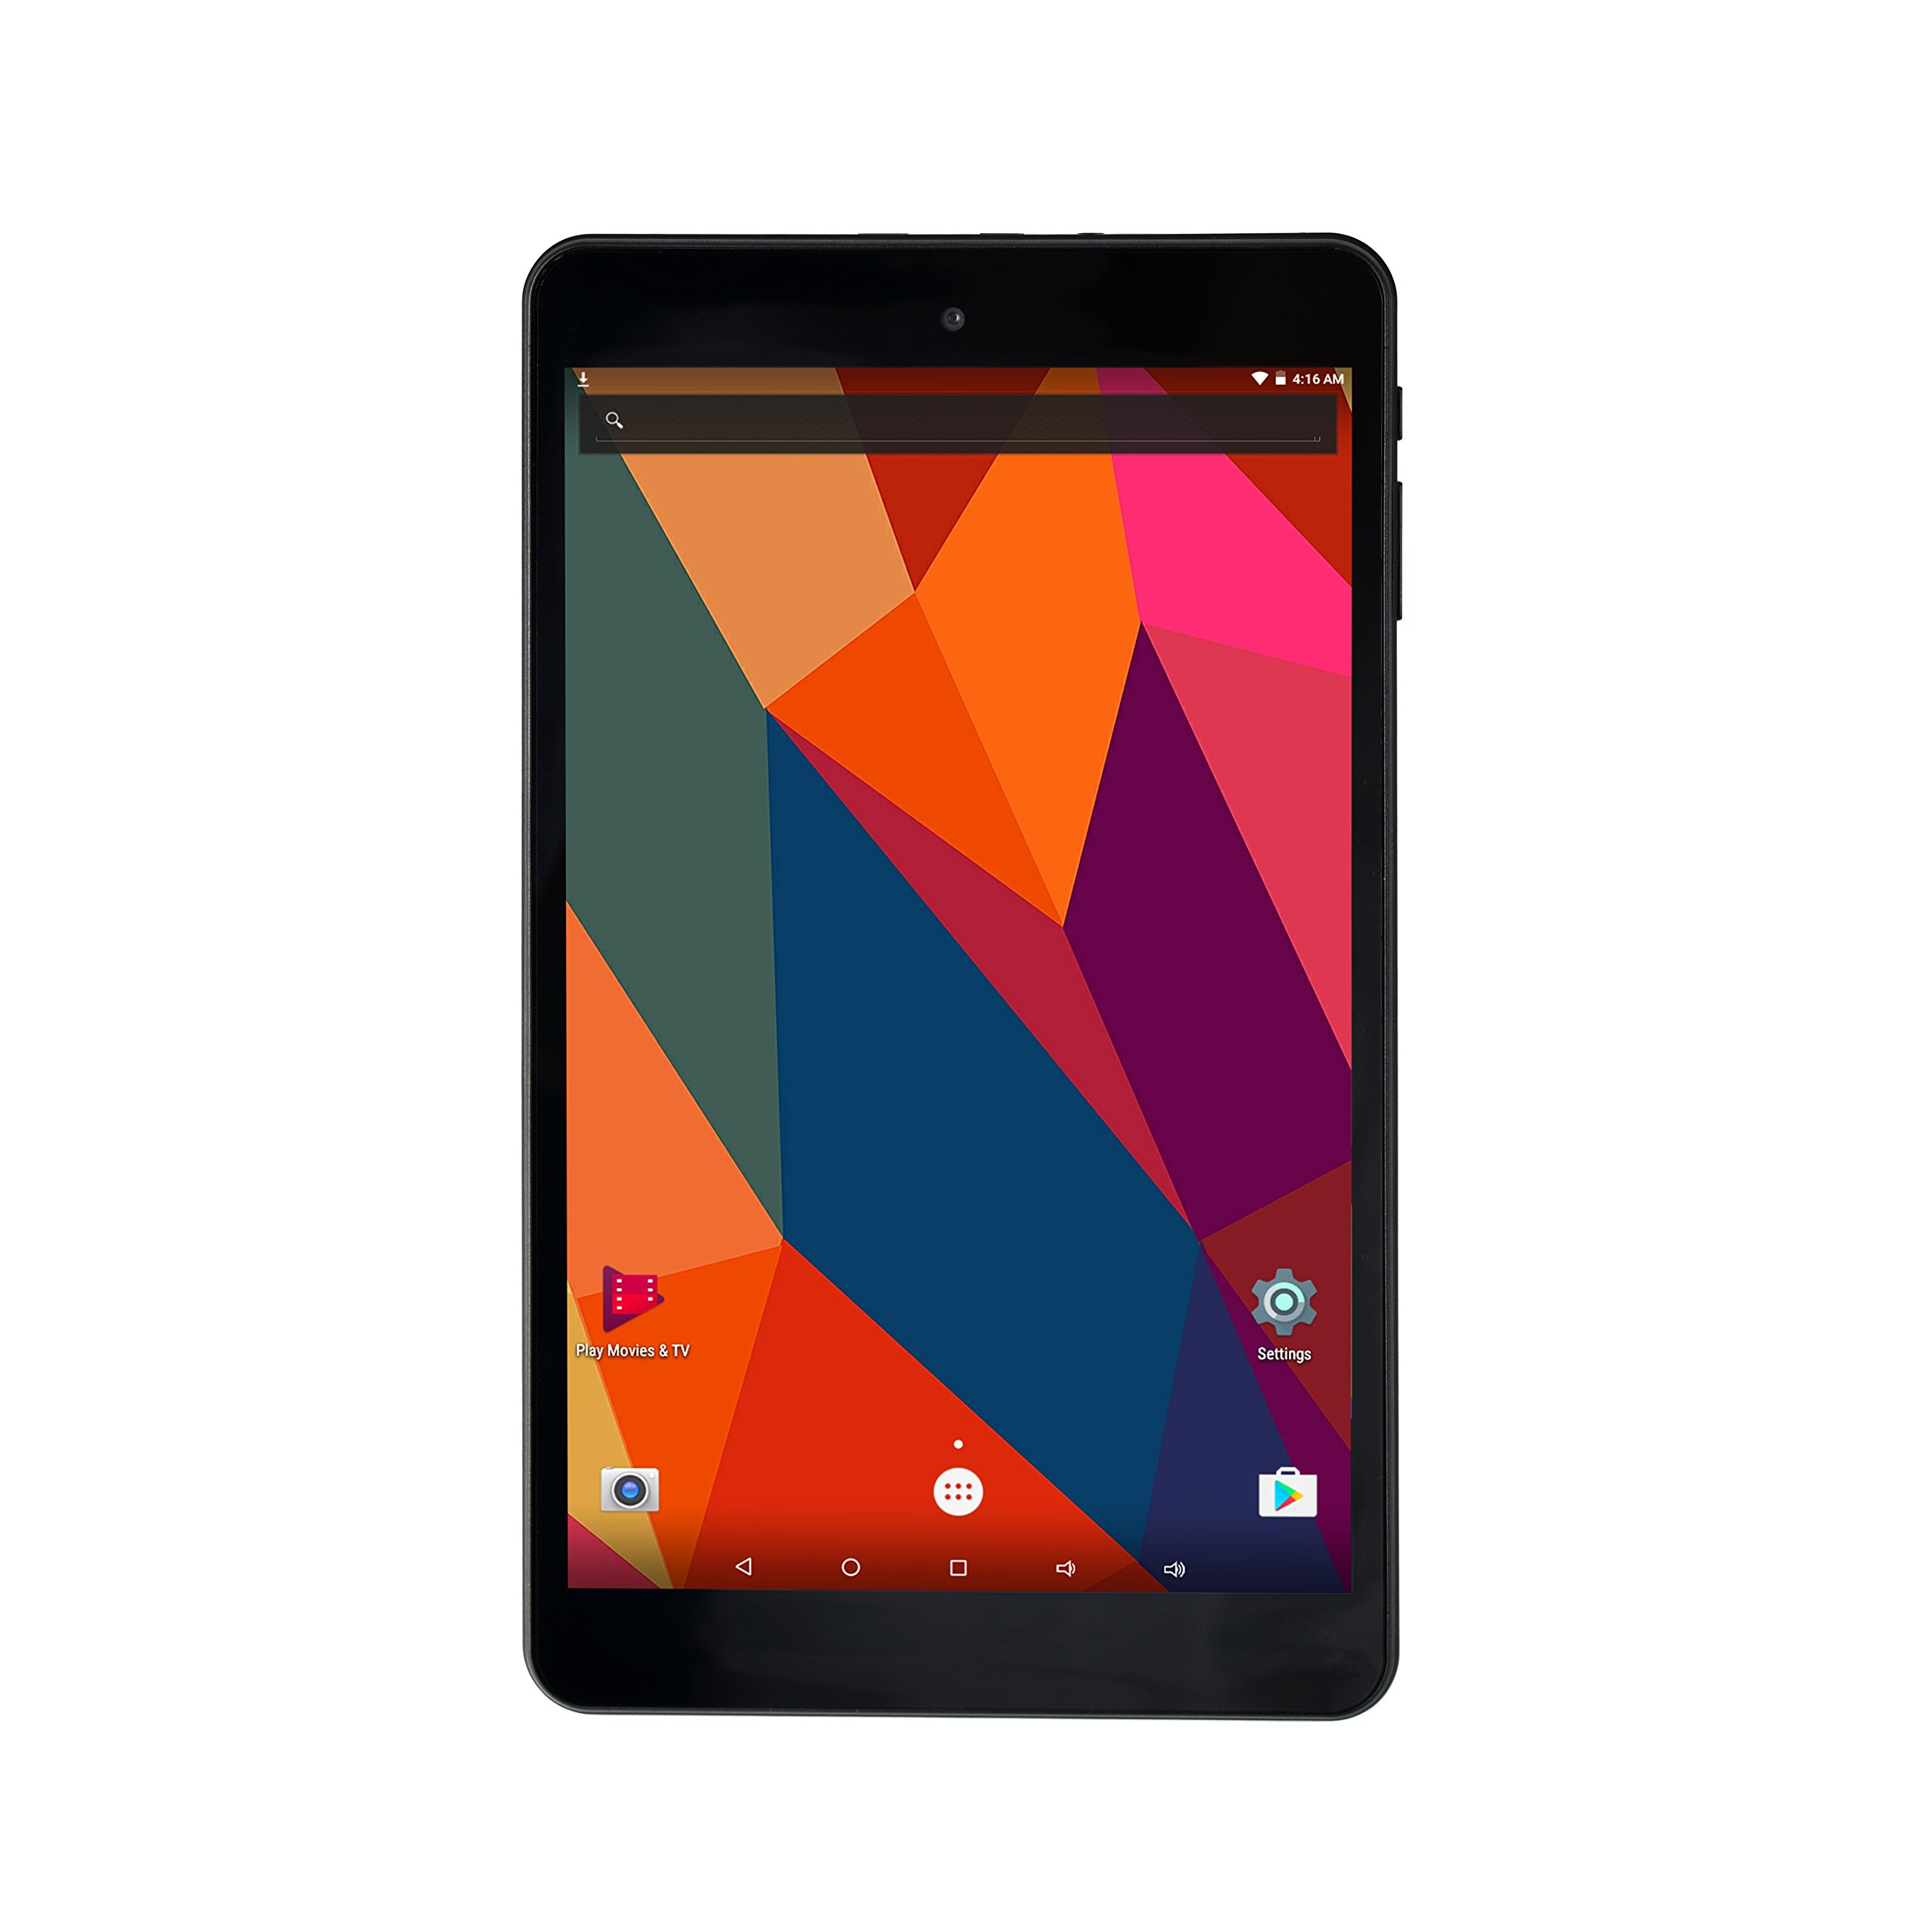 Black 8 inch Tablet, Quad core Cortex A53, 1GB RAM, 16GB Storage, HD 1280800 IPS Display, Dual Camera 2.0MP + 5.0MP, Android 6.0, WiFi, Bluetooth 4.0, GPS, FM,HDMI Output